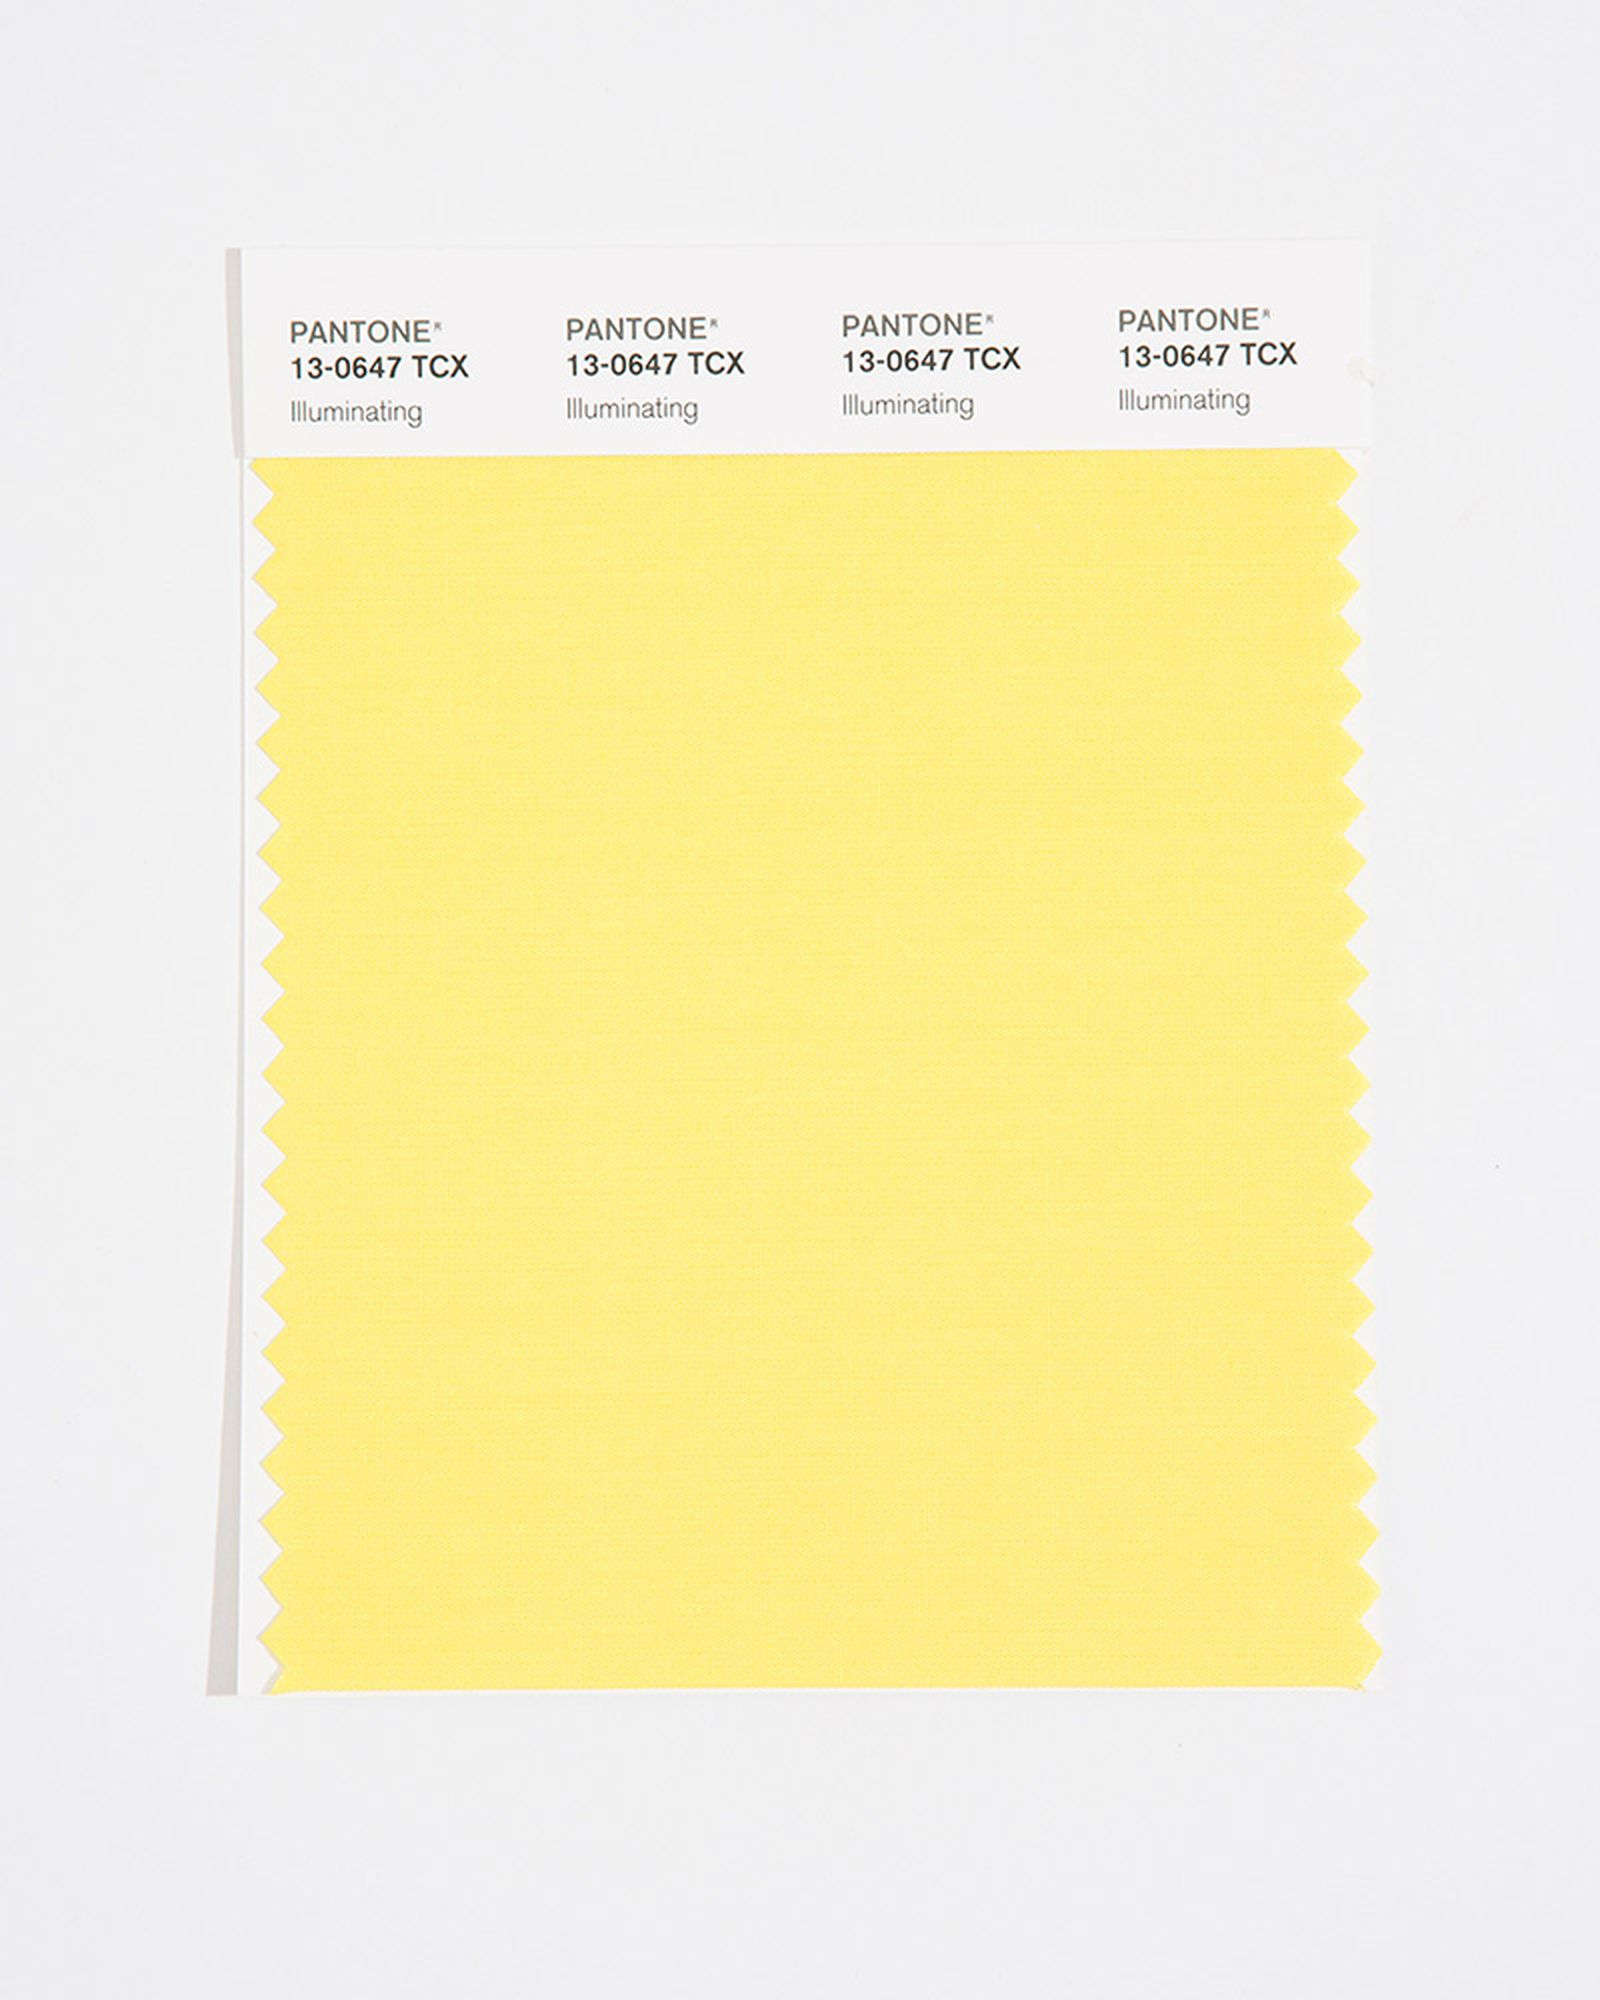 pantone-color-of-the-year-2021-01